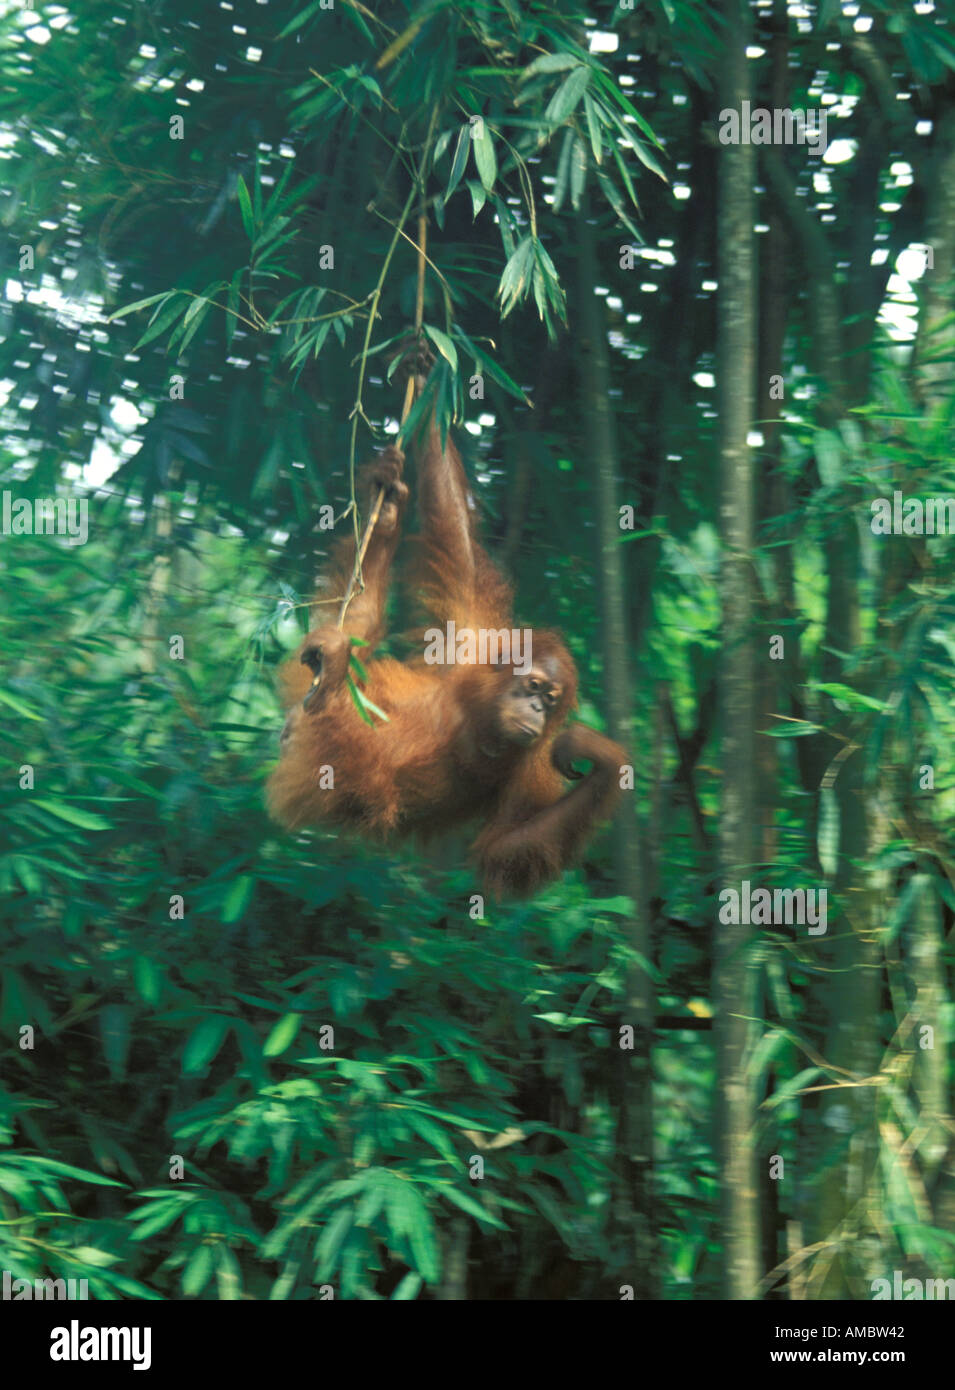 Sumatra an orangutan in the Bukit Lawang sanctuary Stock Photo